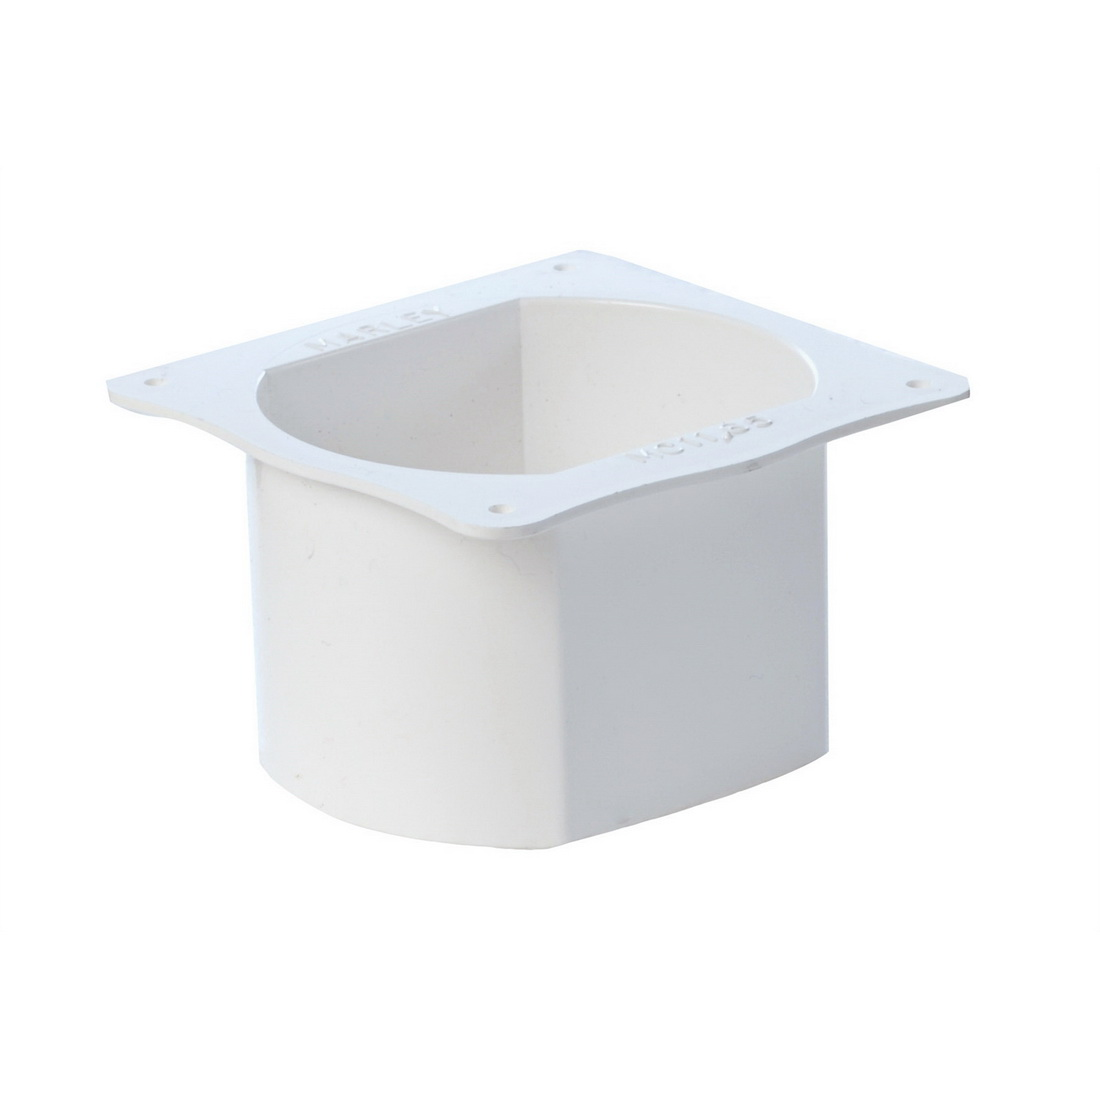 Marley Classic Dropper Outlet 80 mm x 80 mm Unplasticised PVC MC11.65